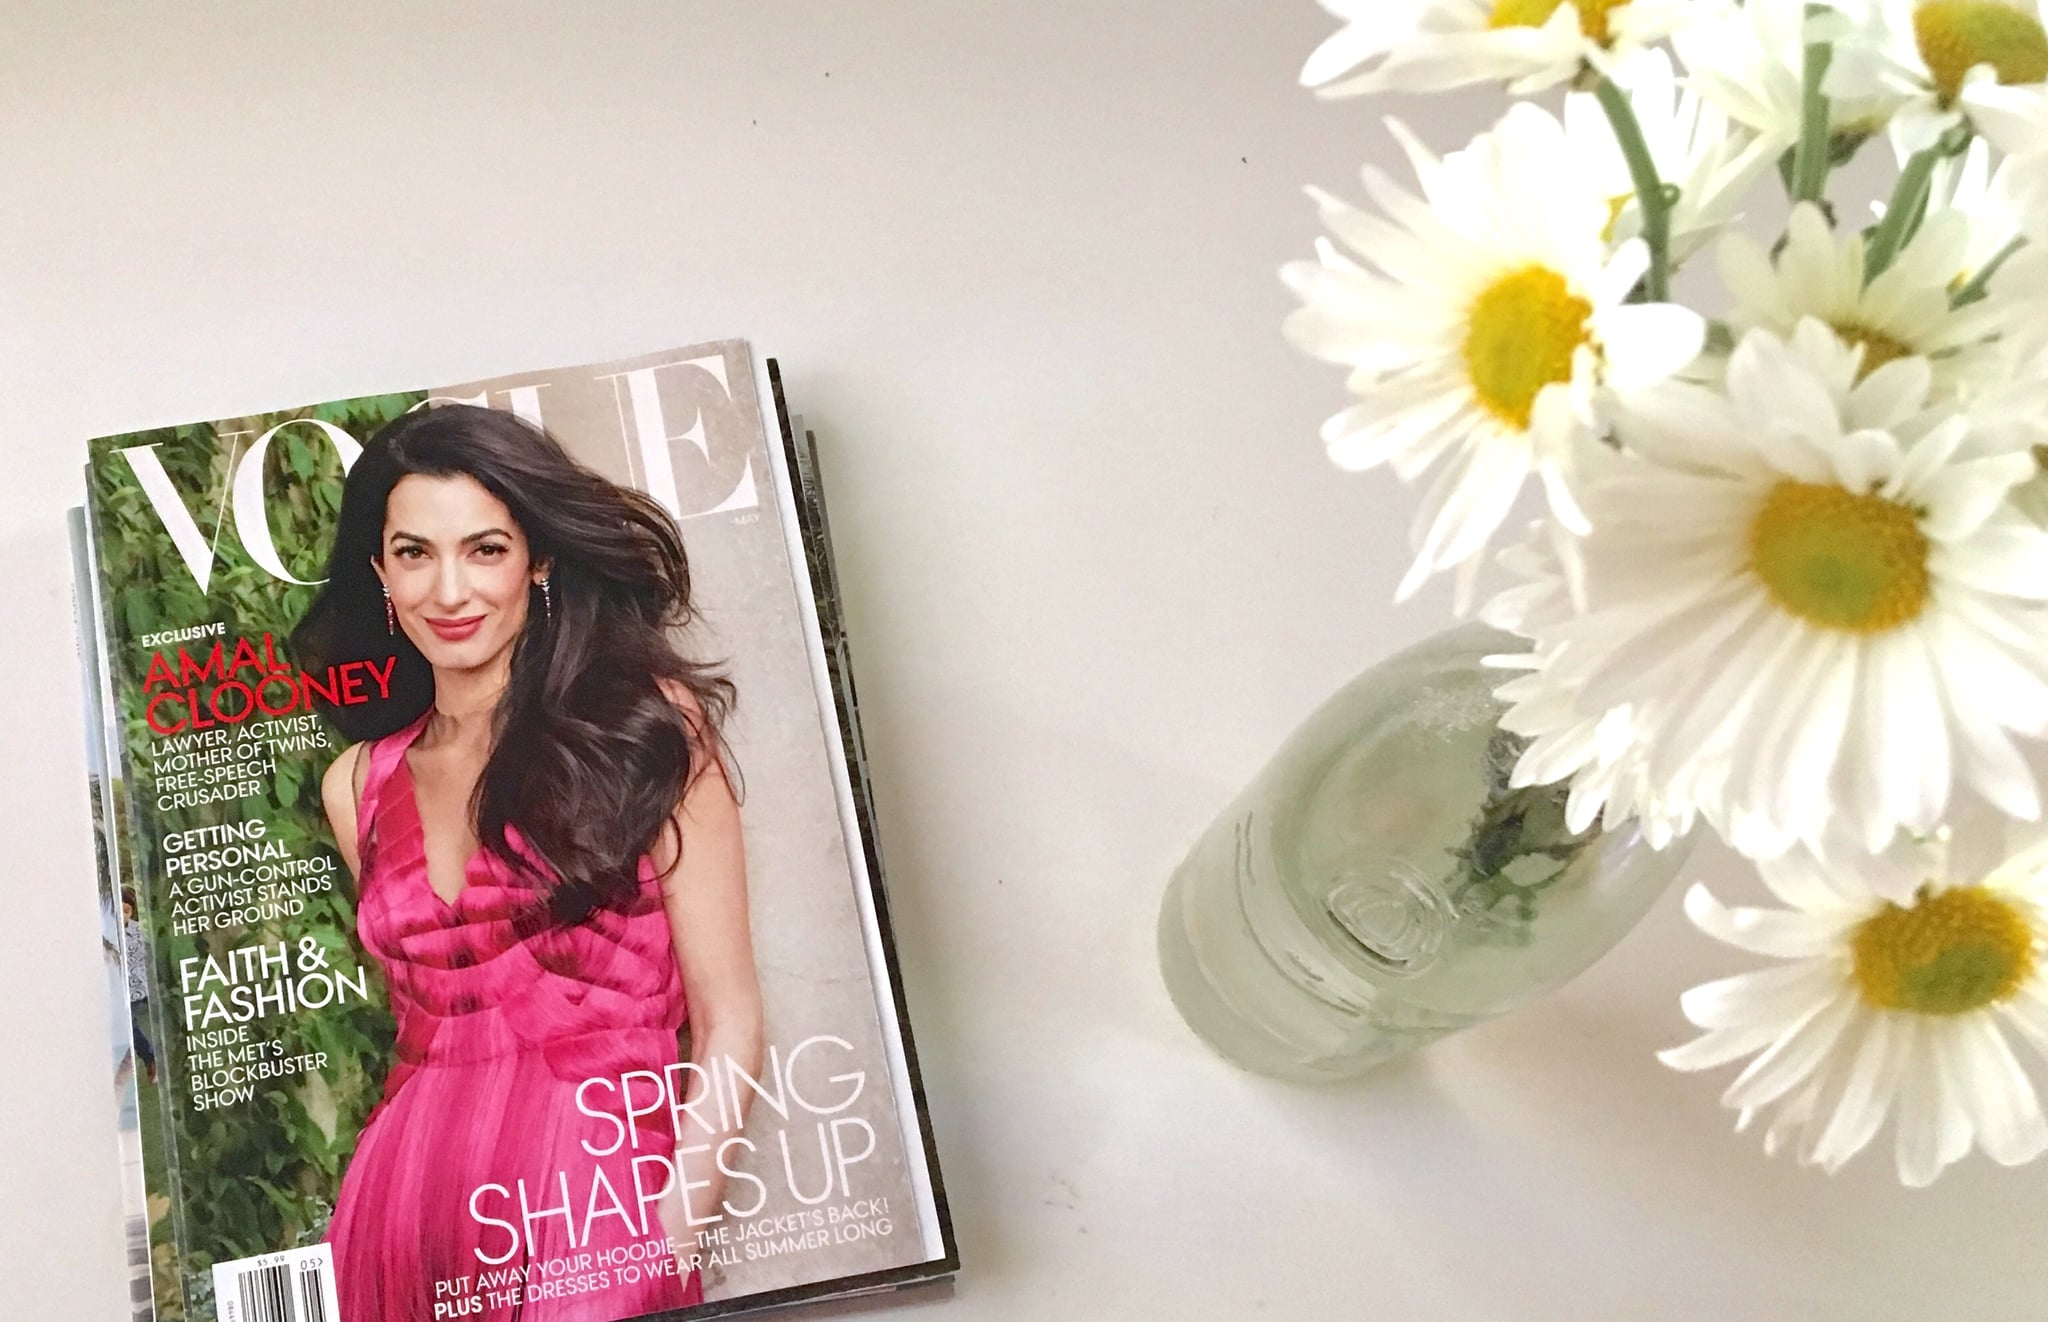 PopsugarFashionAmal ClooneyWhy Amal Clooney's Vogue Cover Really MattersWhy Amal Clooney's Vogue Cover Really MattersMay 12, 2018 by Michelle Chahine Sinno41 SharesChat with us on Facebook Messenger. Learn what's trending across POPSUGAR.Vogue's May 2018 issue features Amal Clooney on the cover. As a Lebanese-American woman, I find this worth noting for many reasons. First, a Lebanese woman is on the cover of a major global magazine, being profiled in a positive way as someone to look up to. Second, a woman other than an actress or a model is being highlighted, and thus a career route other than one in the movies or fashion is being celebrated — young girls pay attention to these things. Third, a different kind of beauty is being represented on a large scale.I didn't truly understand how important the last was until I experienced the soft, subtle ways we react to our surroundings and behave based on what we are exposed to.Two Springs ago, I wanted a change. I wanted to feel different, look different, be dif - 웹